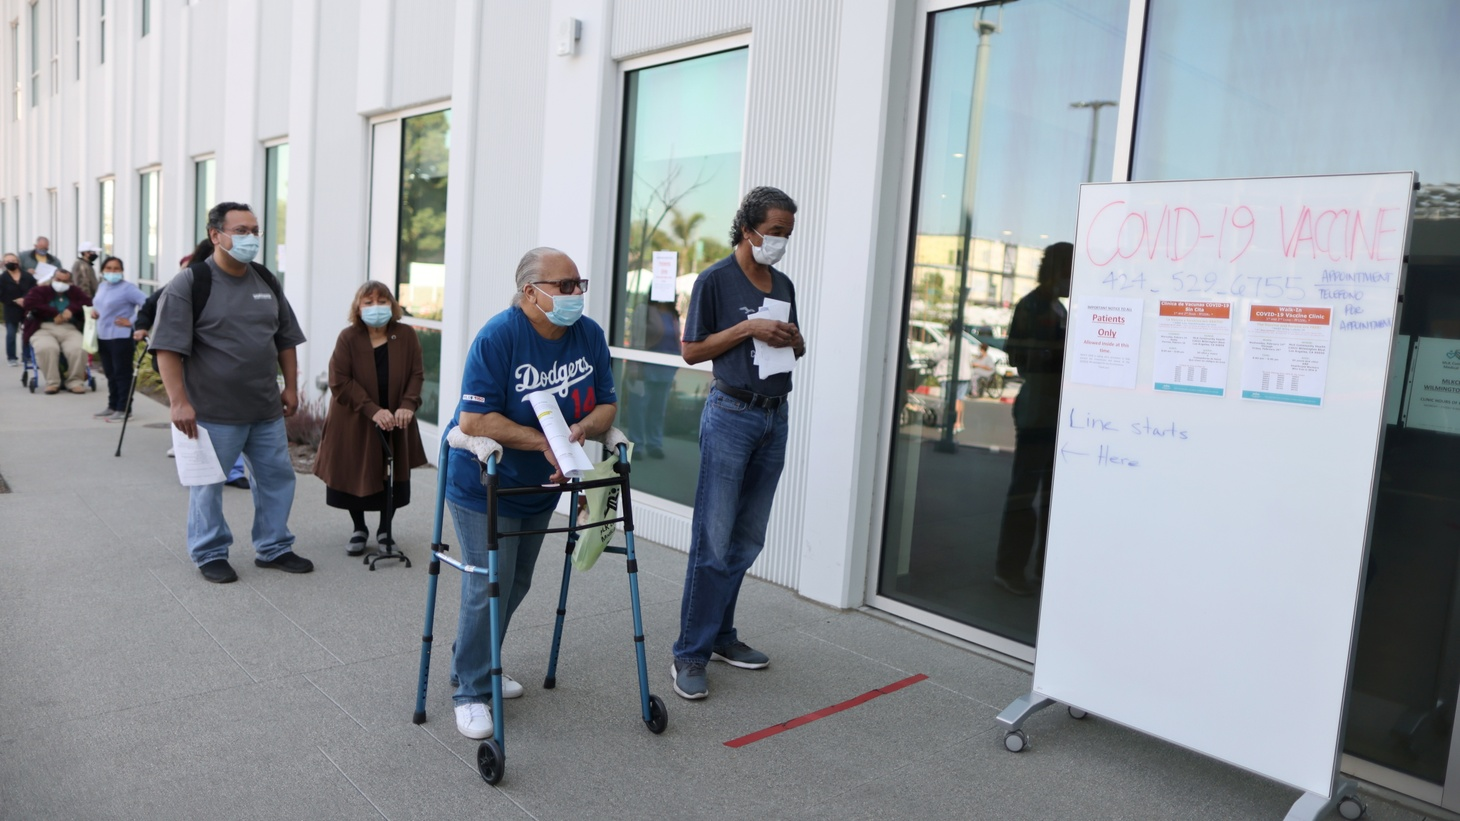 People wait in line for coronavirus disease (COVID-19) vaccinations at Martin Luther King Jr. Community Hospital in Willowbrook, Los Angeles, California, U.S., February 25, 2021.